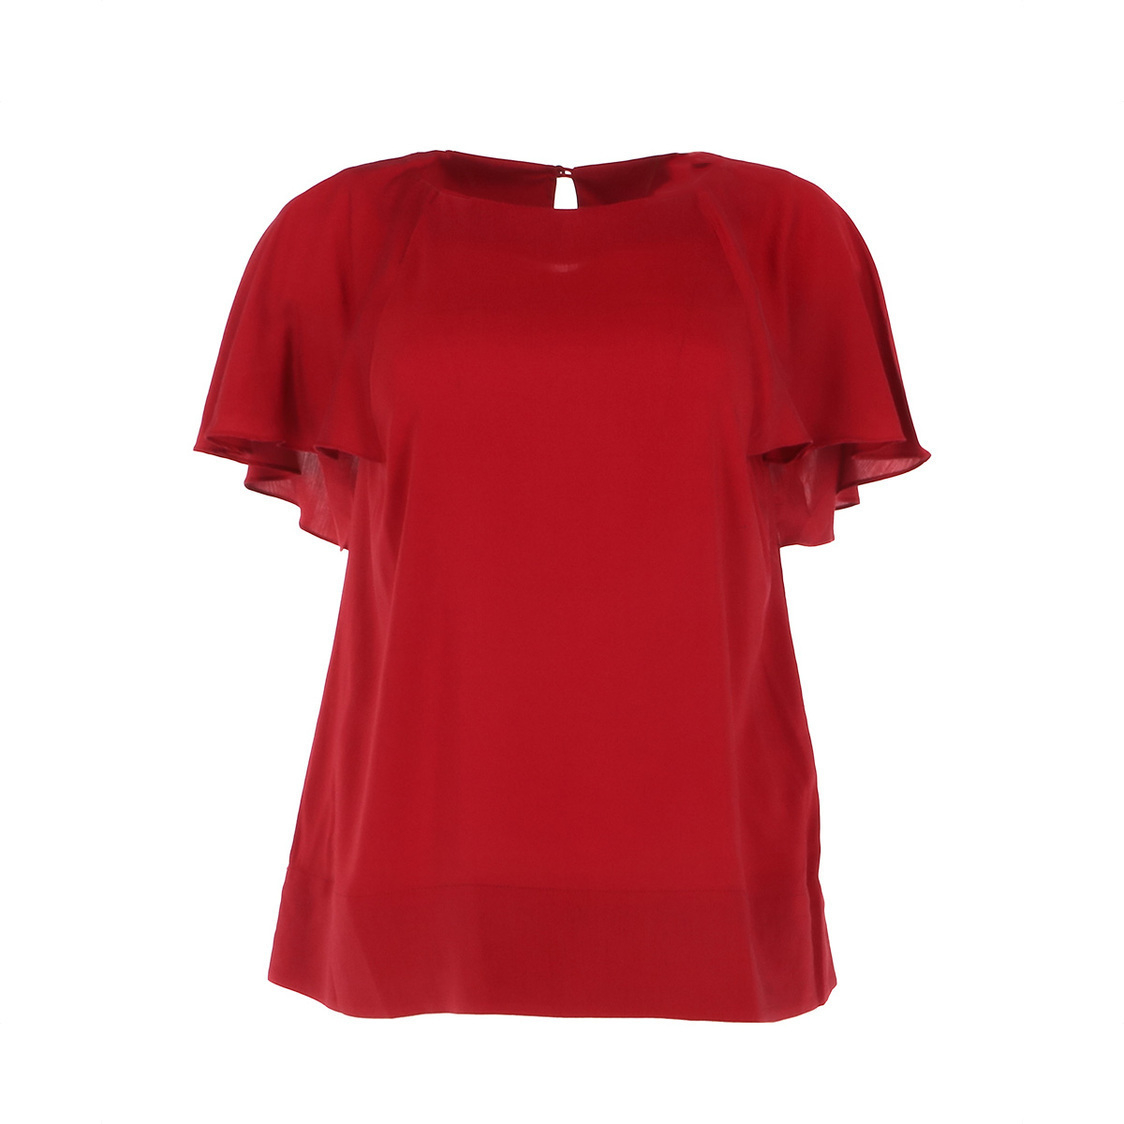 Super Soft Cape Sleeve Top in Red